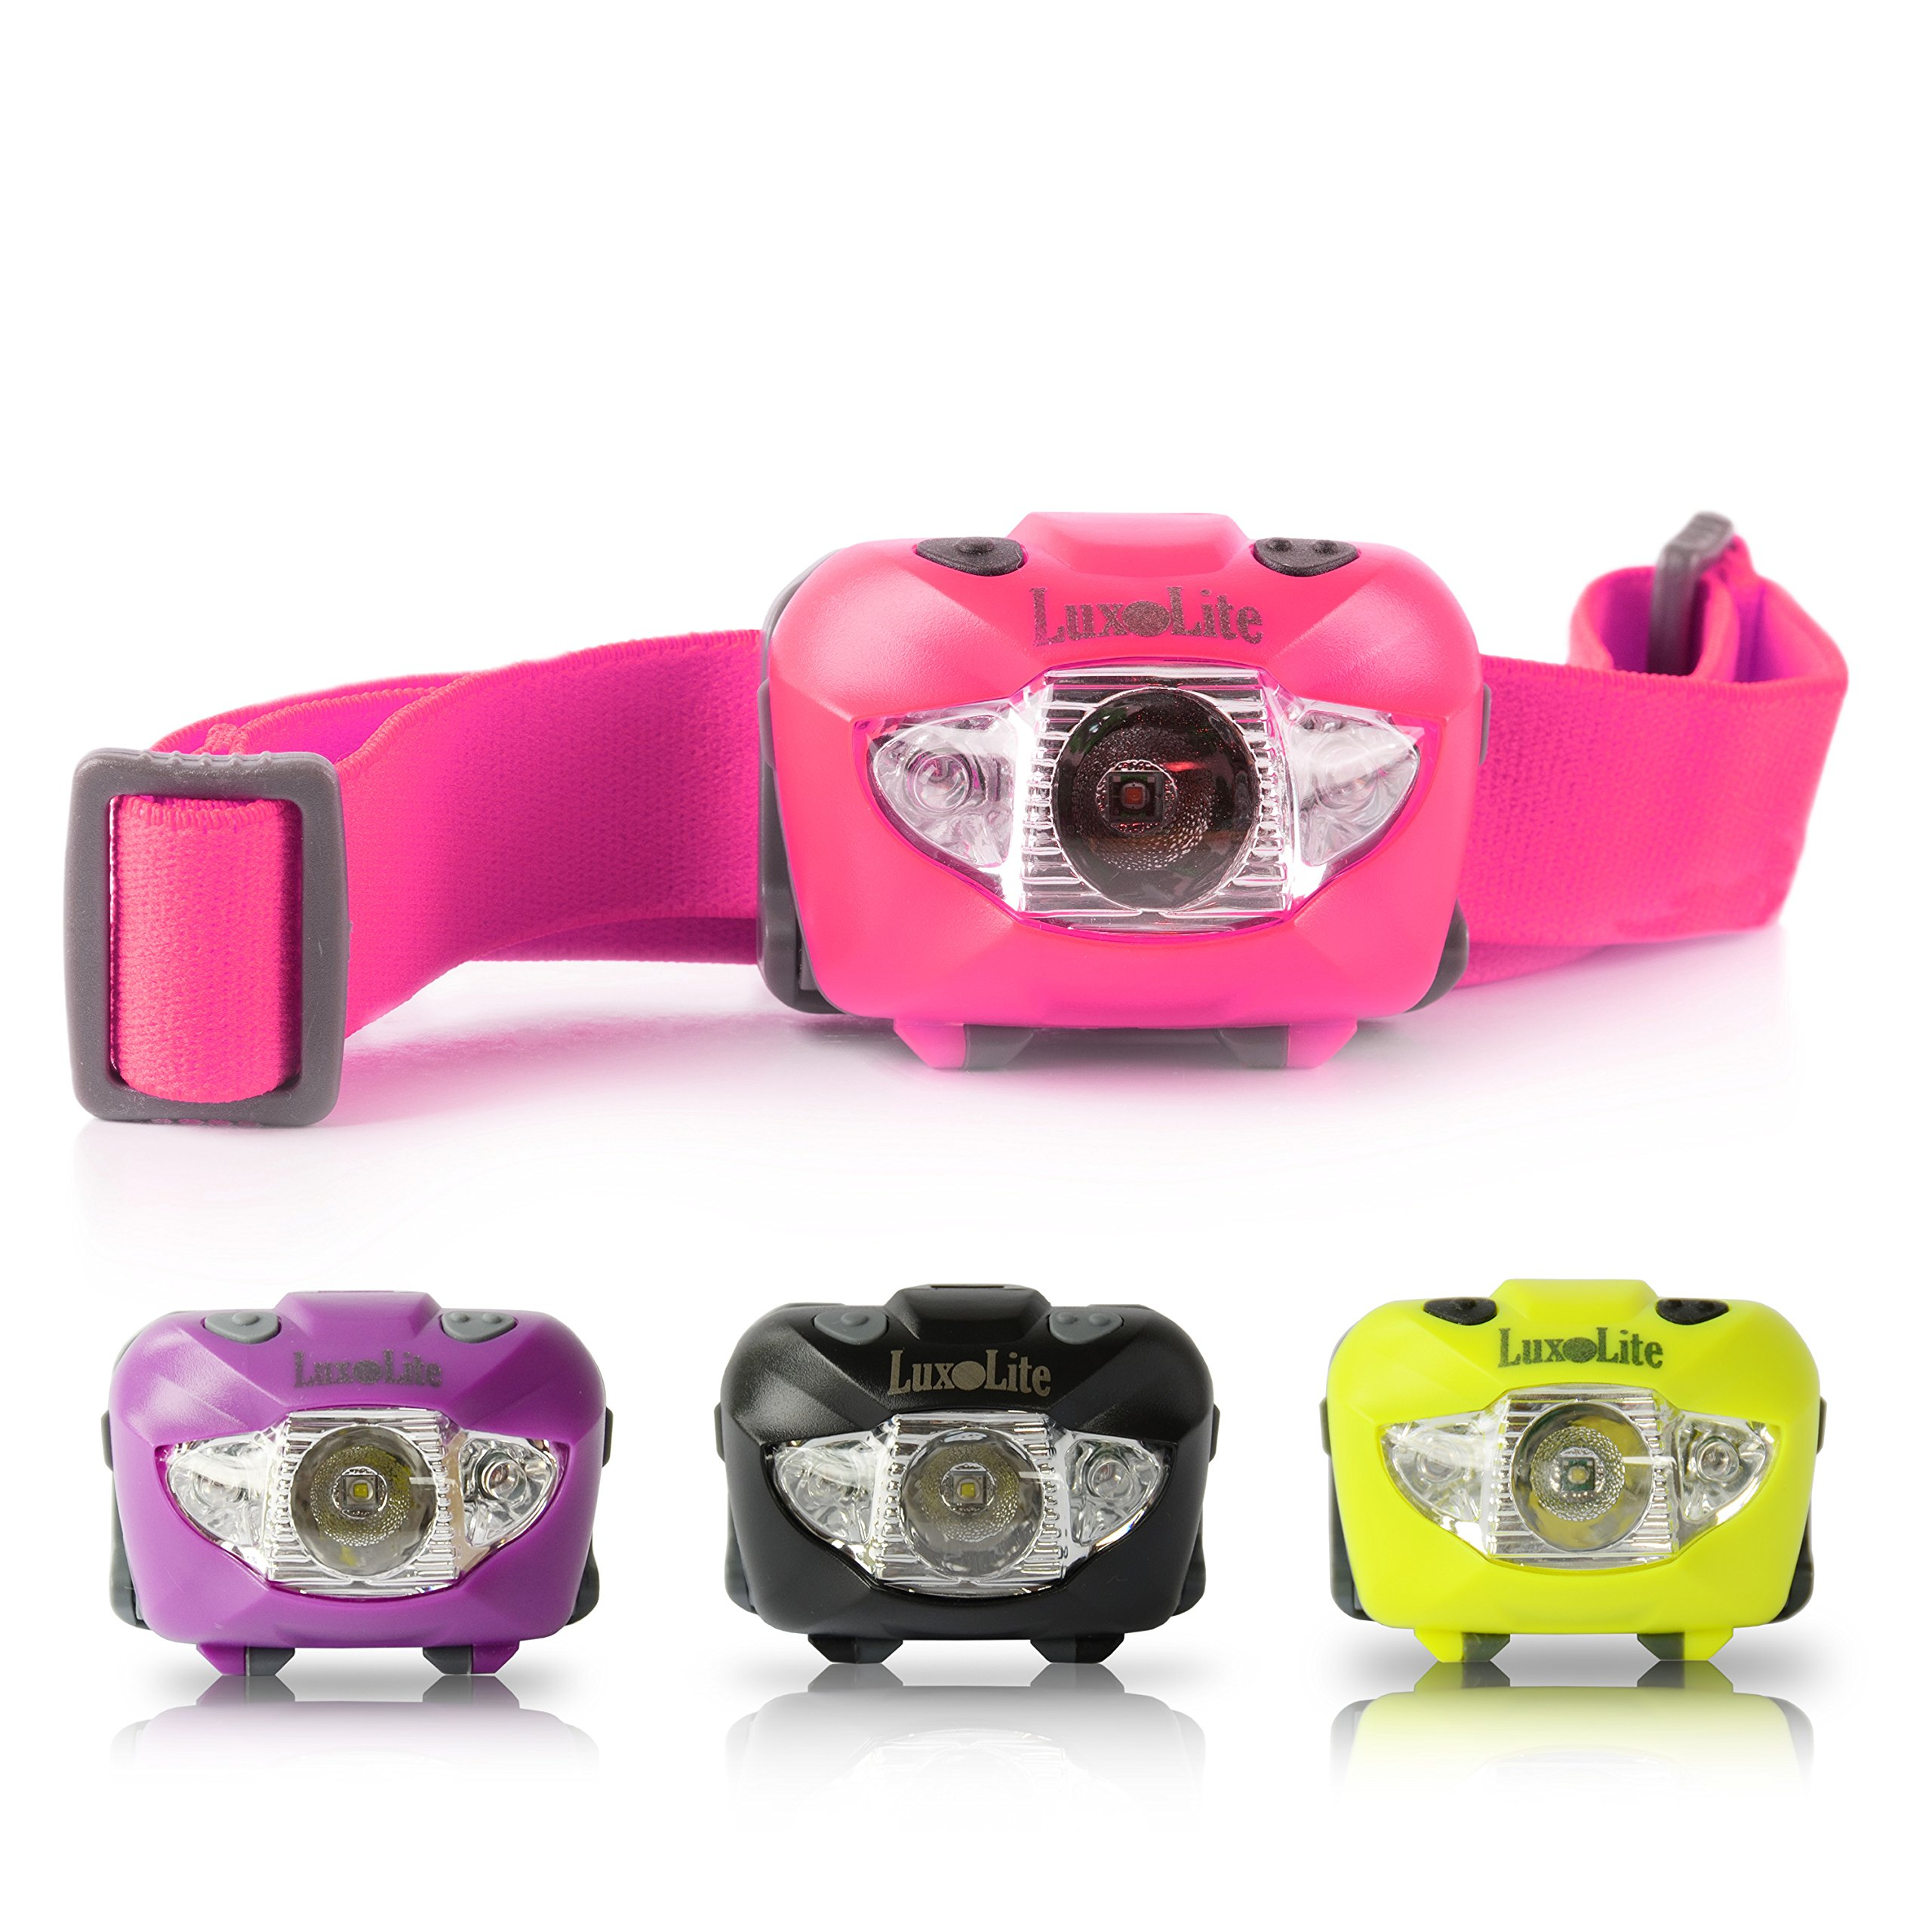 LED Headlamp with Red Light - Brightest Head Flashlight for Women, Kids - Stylish Bright Waterproof Runners Headlamps for Running Kit, Best Outdoor Gear Exploring Products Camping, Walking and Reading by Luxolite